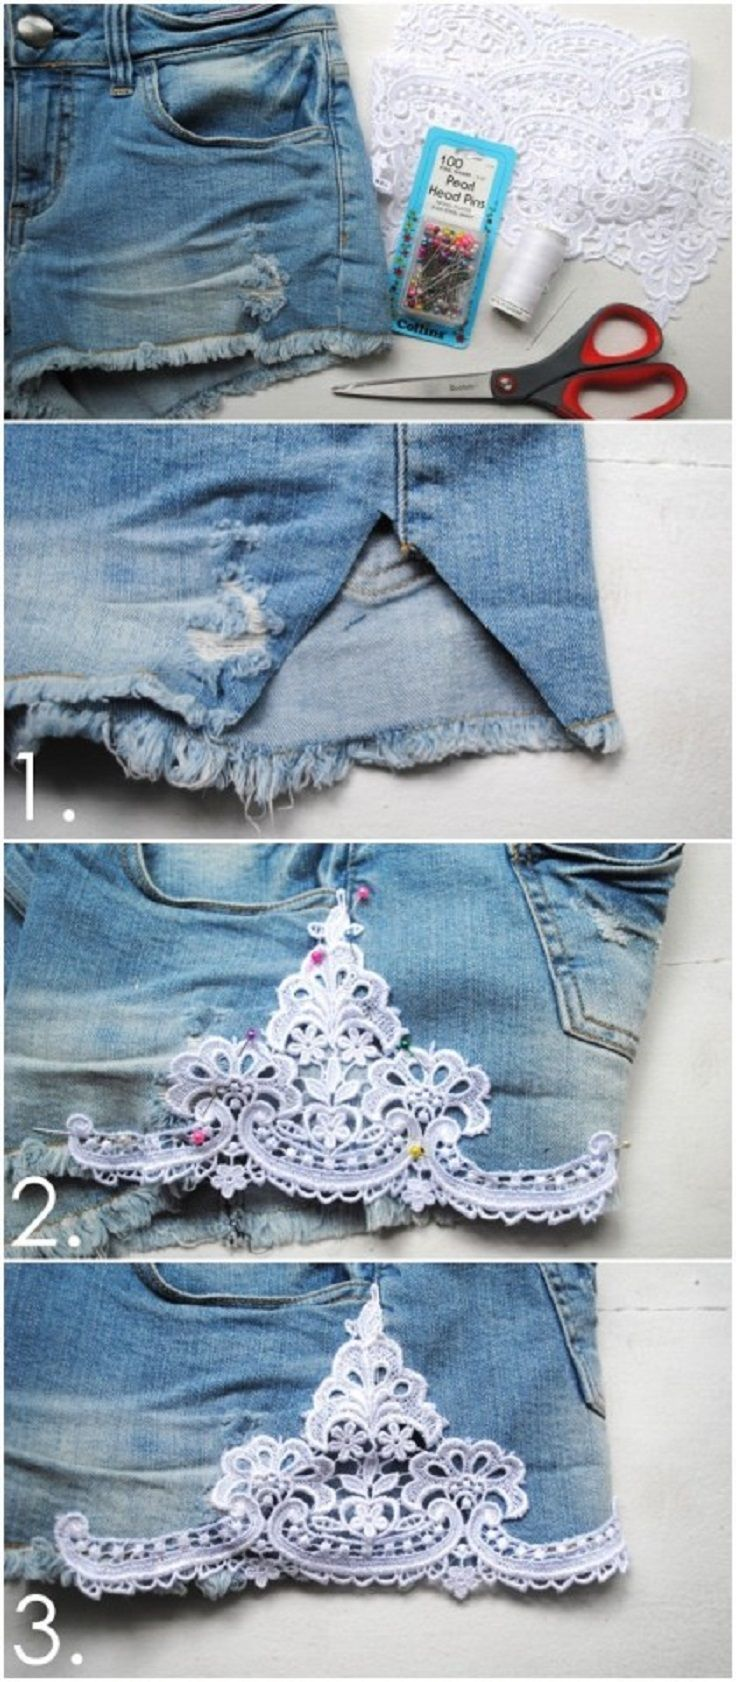 Top 10 Things To Do With Old Jeans. I always find it hard to part with jeans for some reason, maybe now I wont have too!